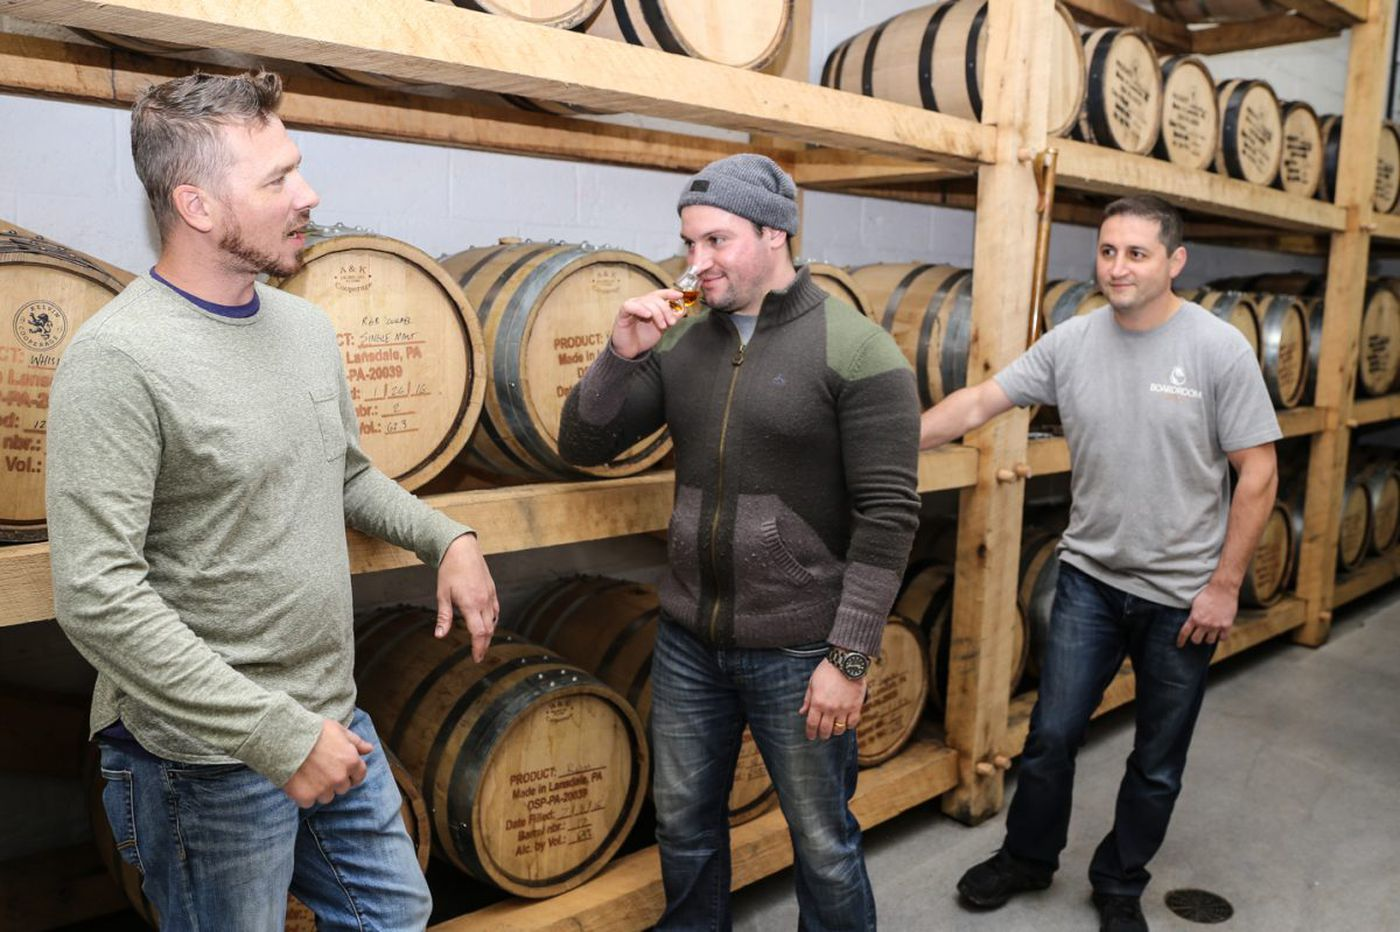 On the trail of the Philly region's best craft spirits